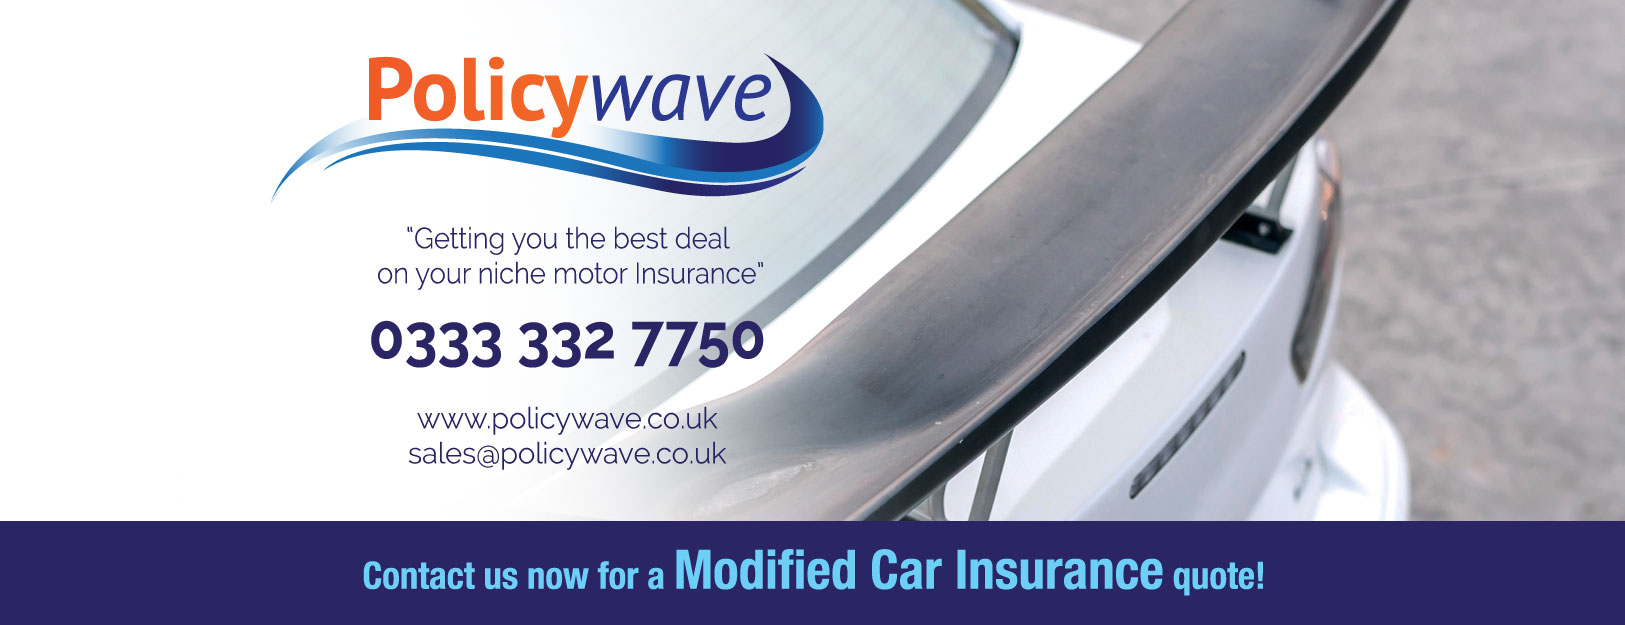 policywave-facebook-modified-car-insurance | Policywave